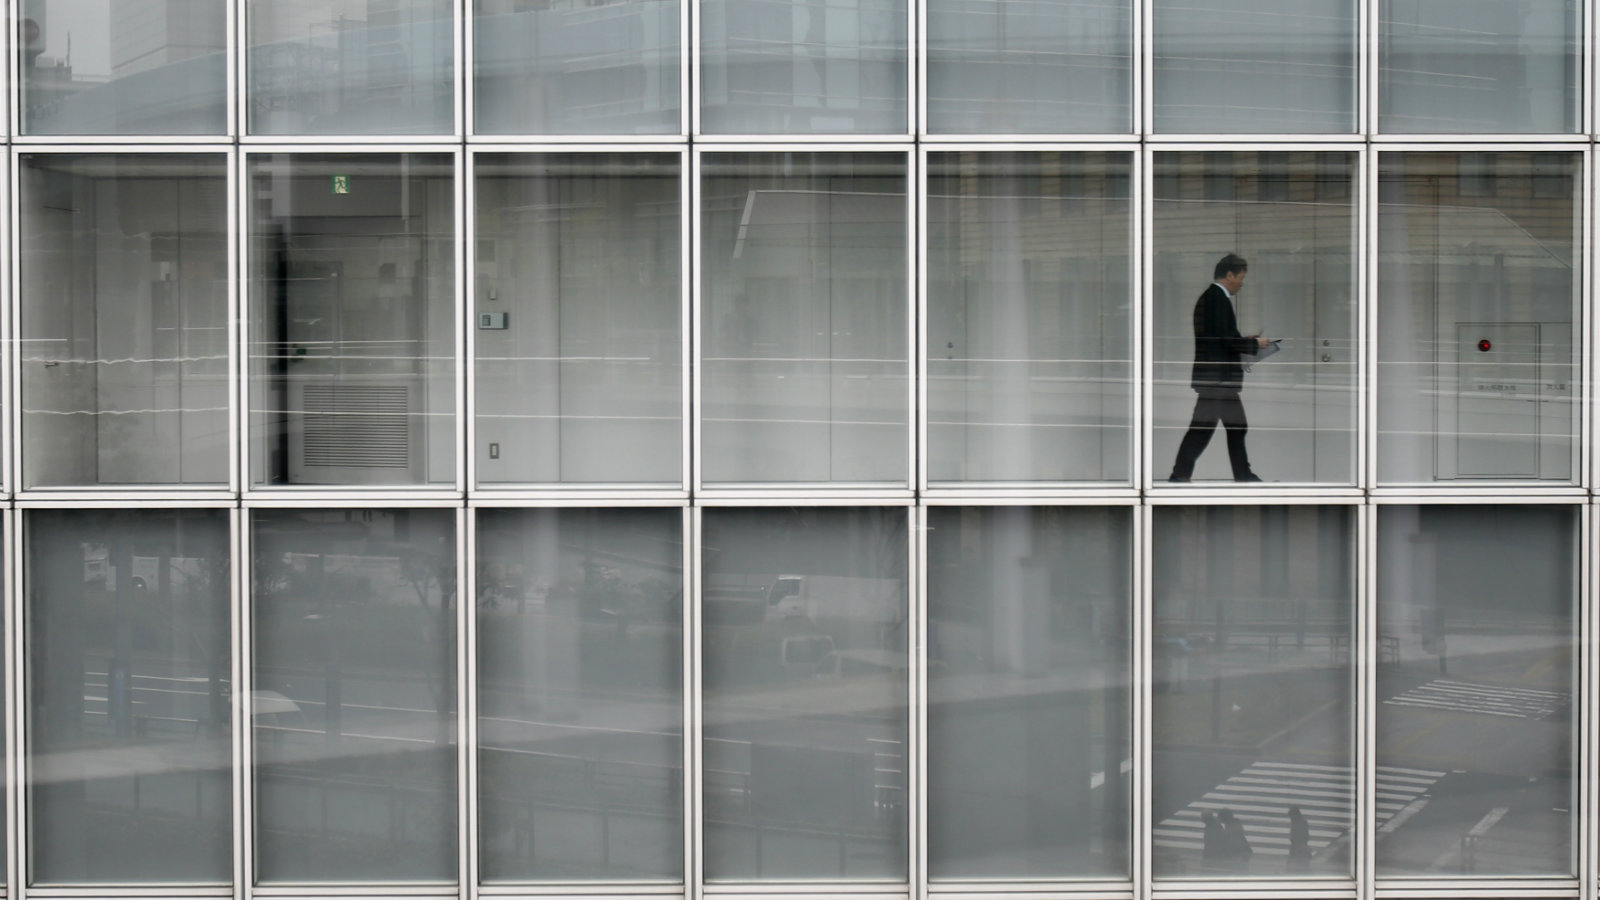 A man walks inside an office building in Tokyo March 19, 2014. Large Japanese firms are growing more confident about weathering the impact of an imminent sales tax increase and they expect further profit rises even after a bumper year, a Reuters poll showed - encouraging signs for an economy that is seeing a sharp slowdown in growth.